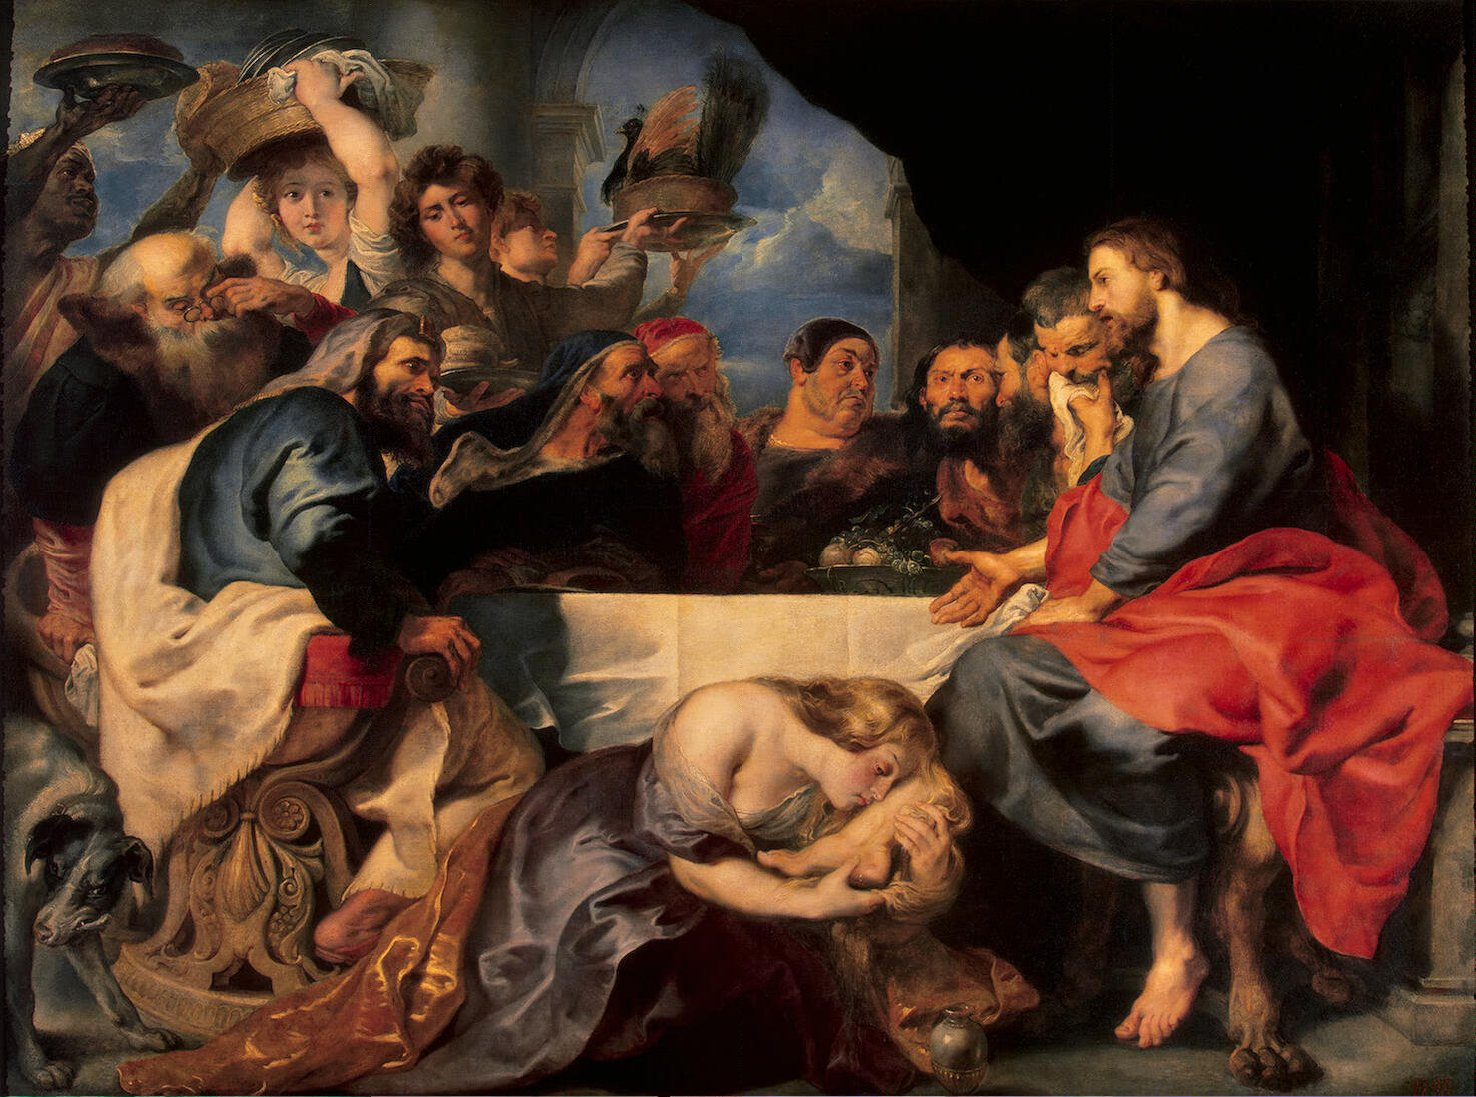 RUBENS; PHARISIEN; PAINTING